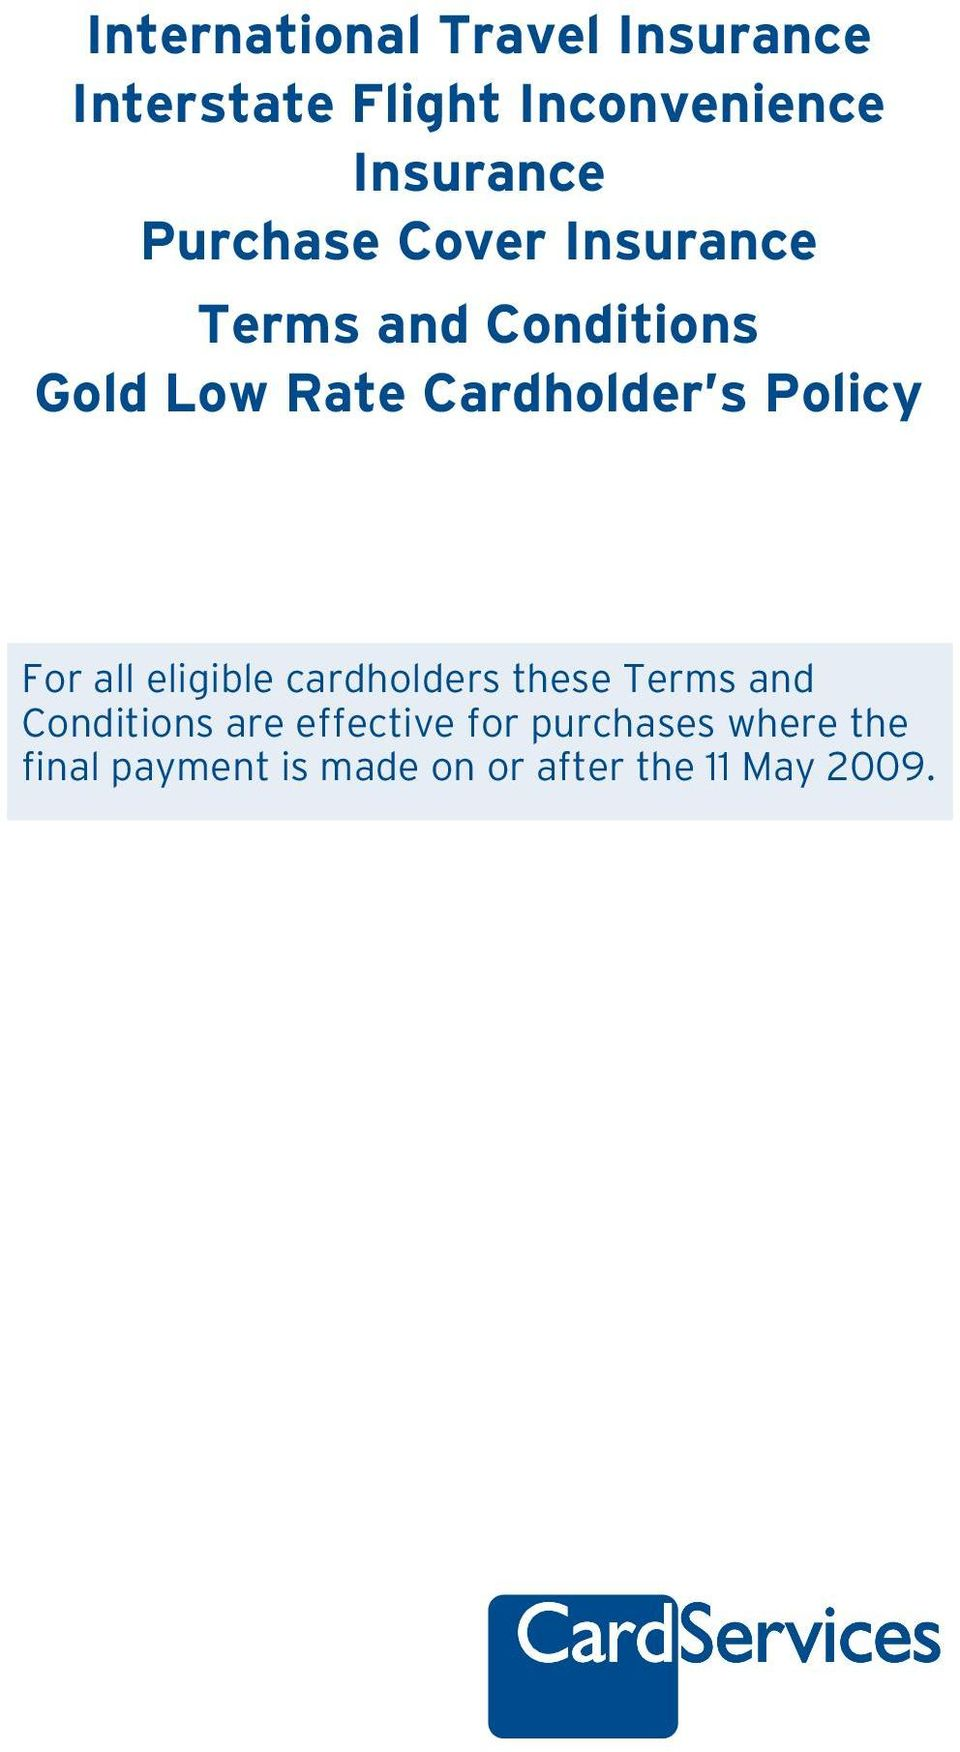 Policy For all eligible cardholders these Terms and Conditions are